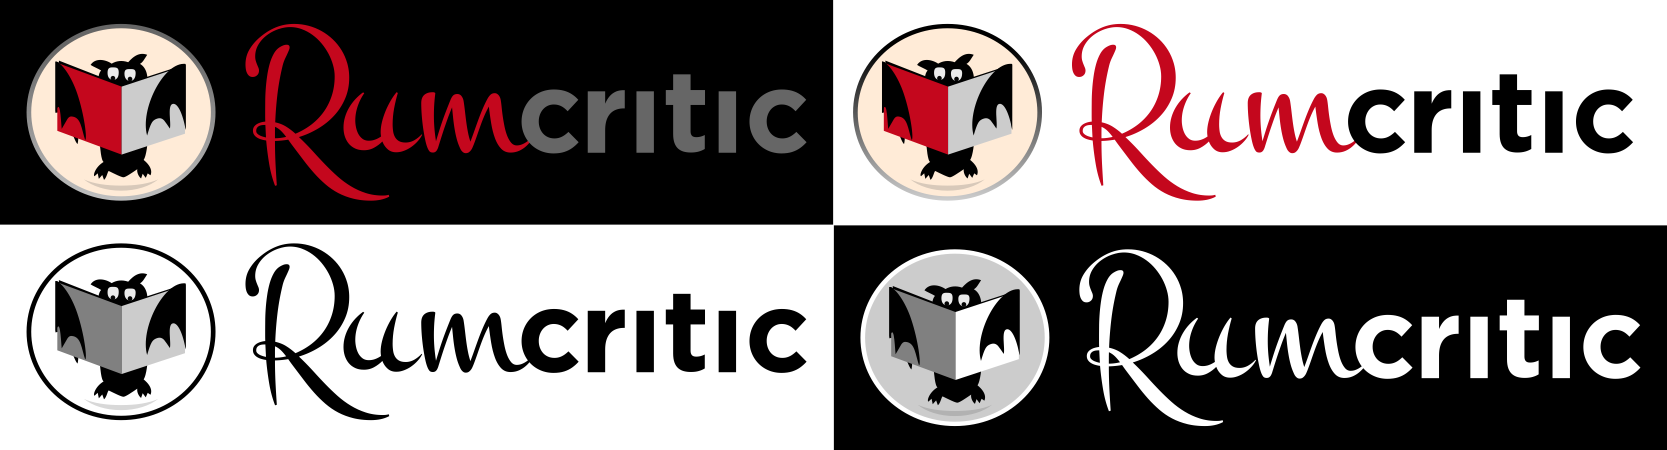 Create the next logo for Rum Critic